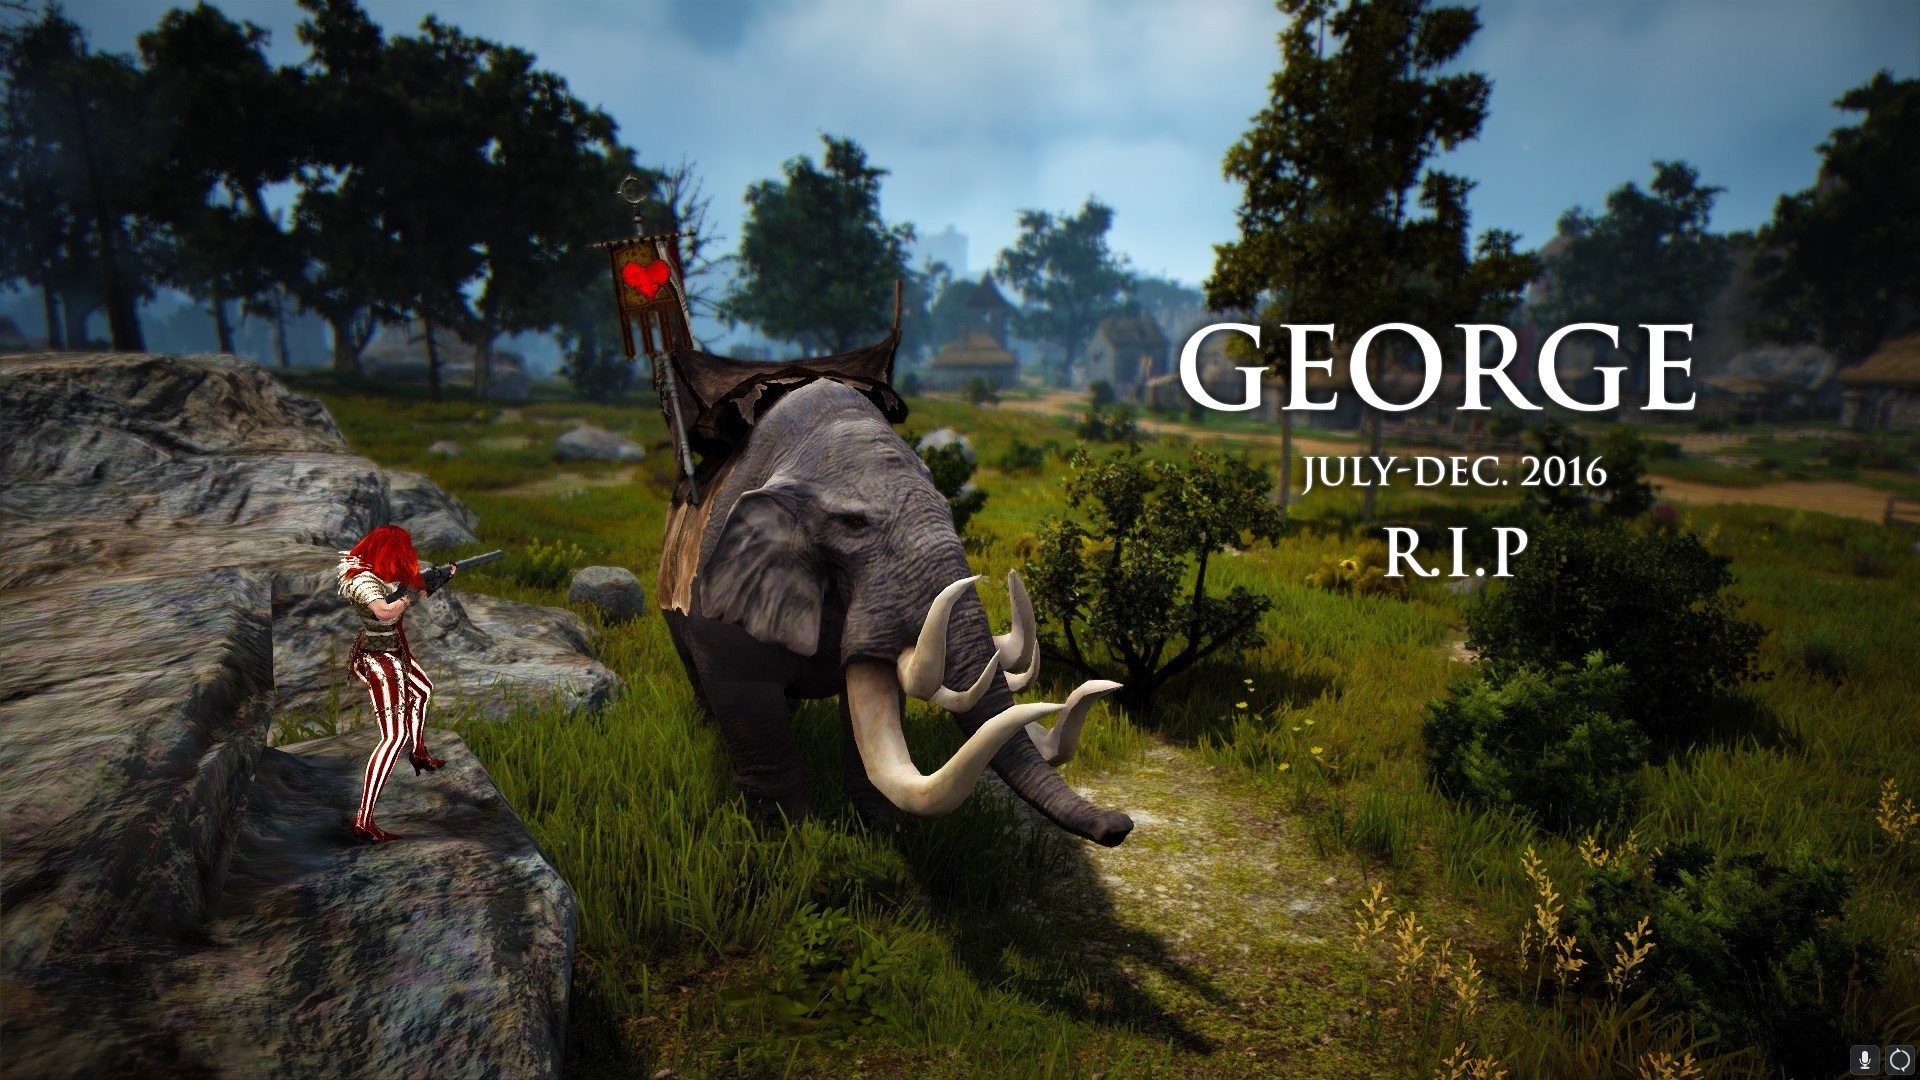 George is dead! Long live George!